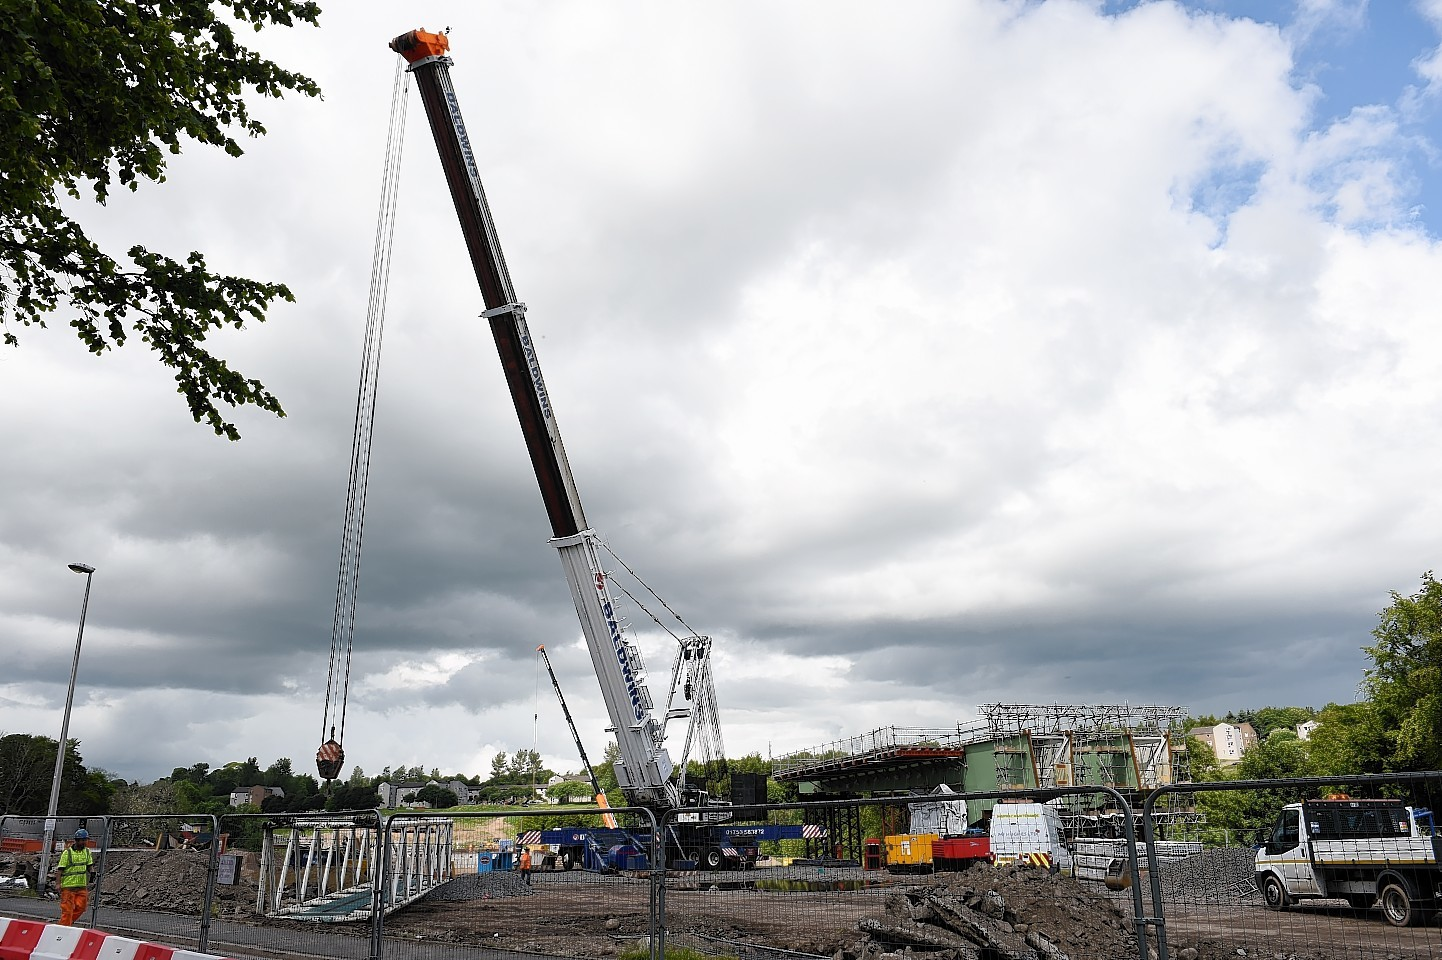 The big crane which will be used to manoeuvre the steel beams into place over the River Don, is being put together on site at the Third Don Crossing.